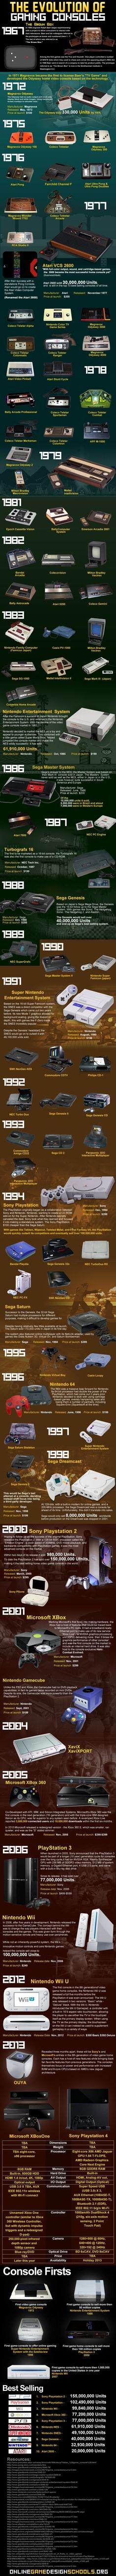 The Evolution of Gaming Consoles (1969 - 2013)